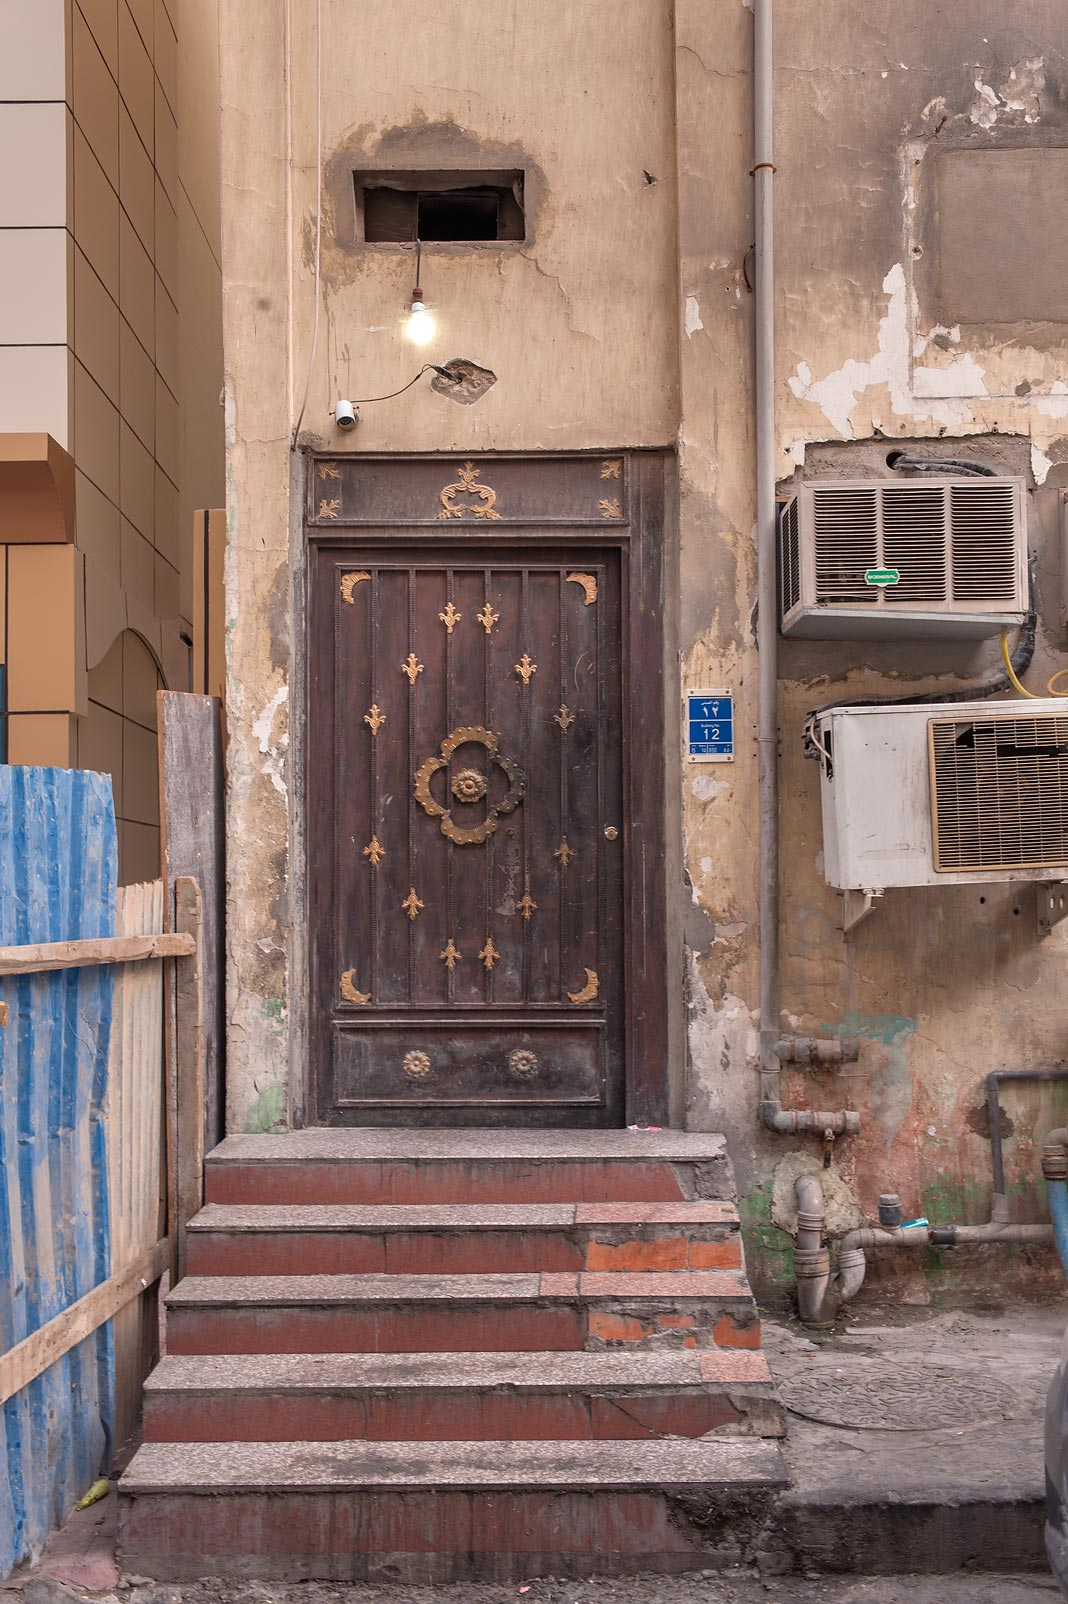 Iron door at Ziyad Bin Eyad St. in Al Doha Al Jadeeda neighborhood. Doha, Qatar